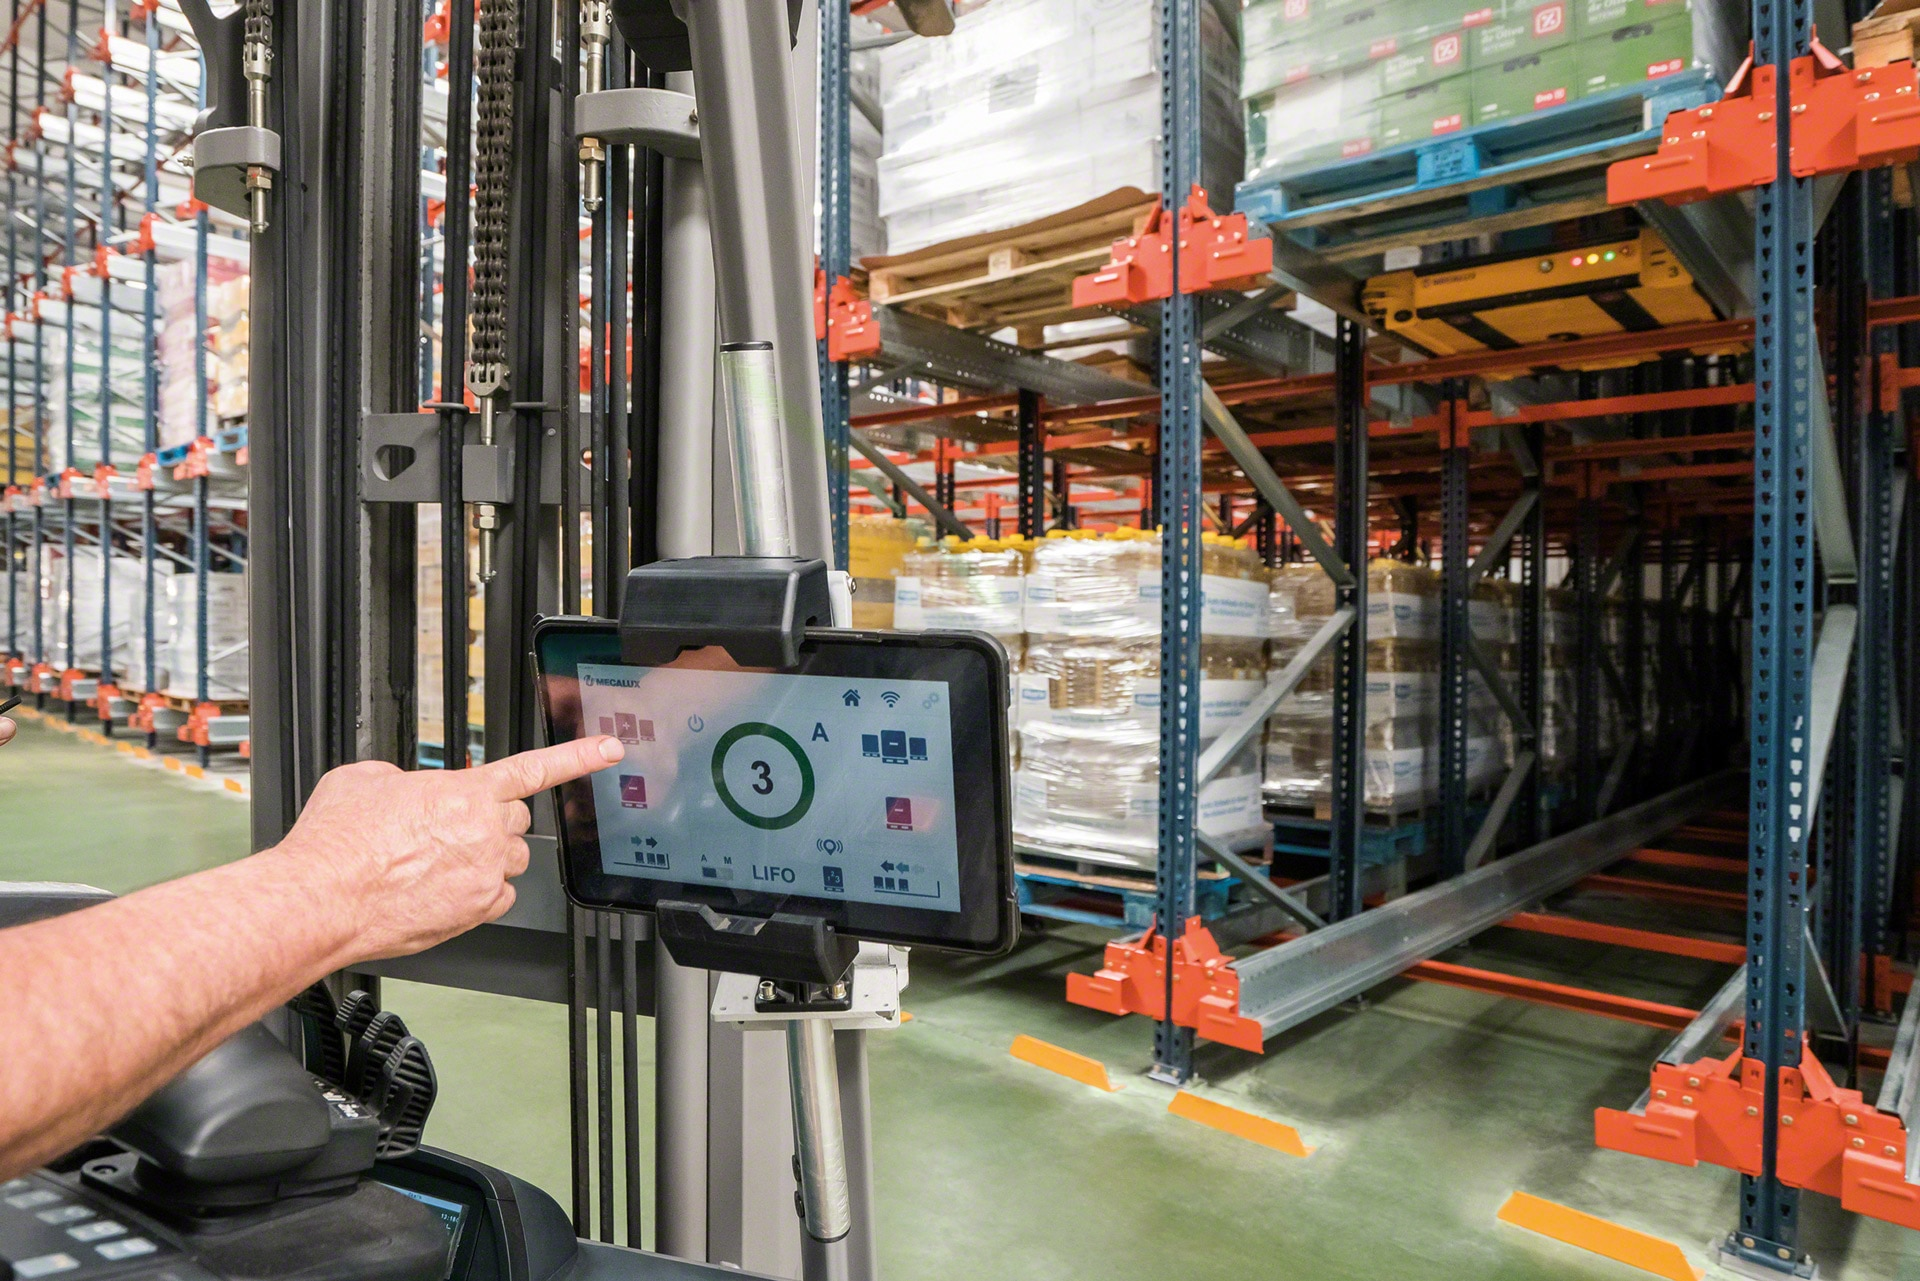 With the Mecalux EASY WMS system, one tablet can control up to 18 shuttles at a time